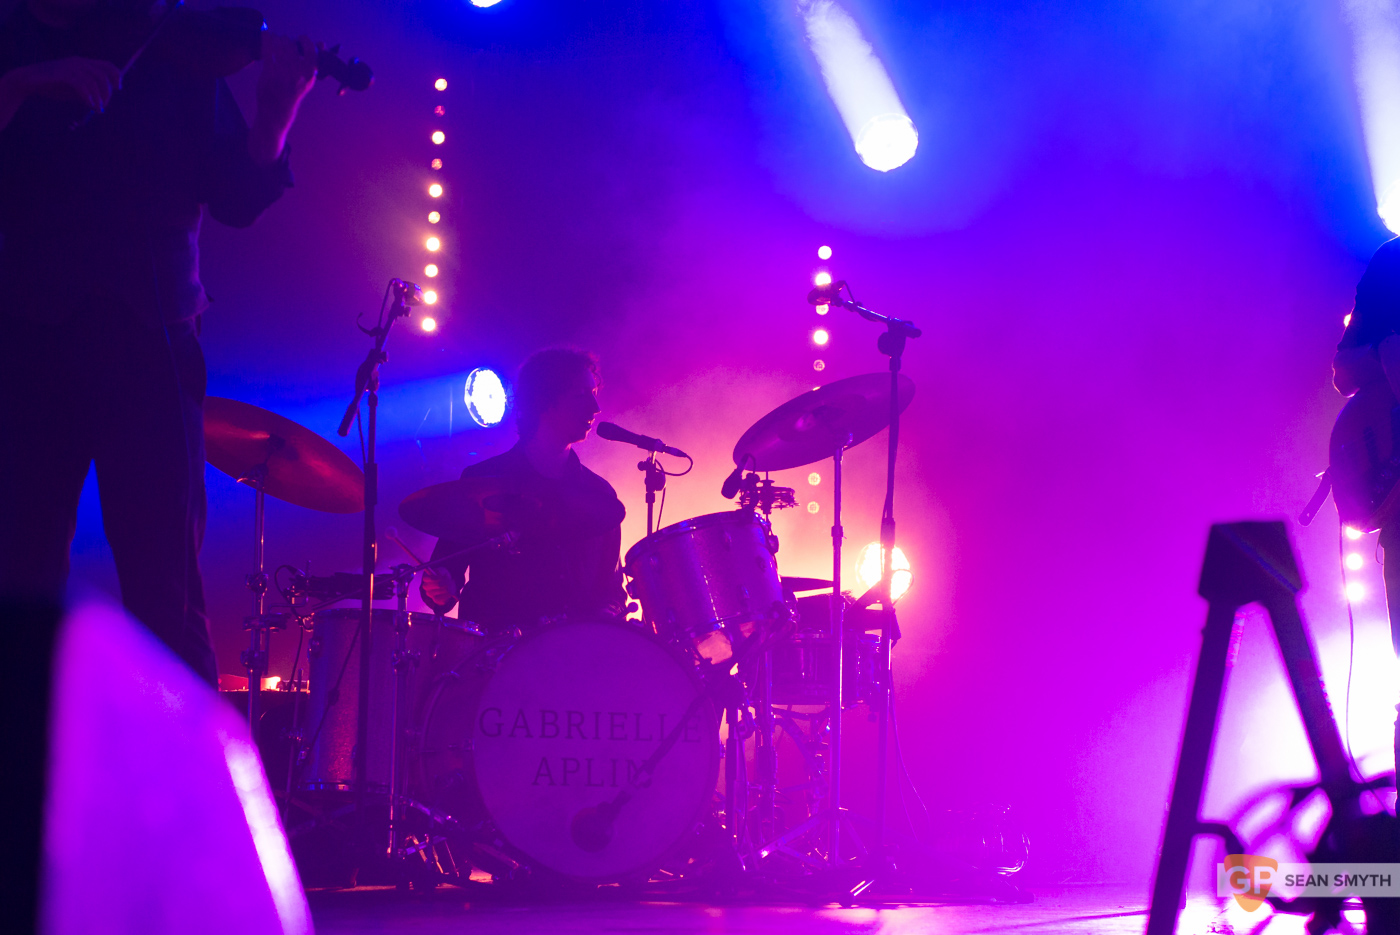 Gabrielle Aplin at the Olympia Theatre by Sean Smyth (20-2-15) (14 of 28)